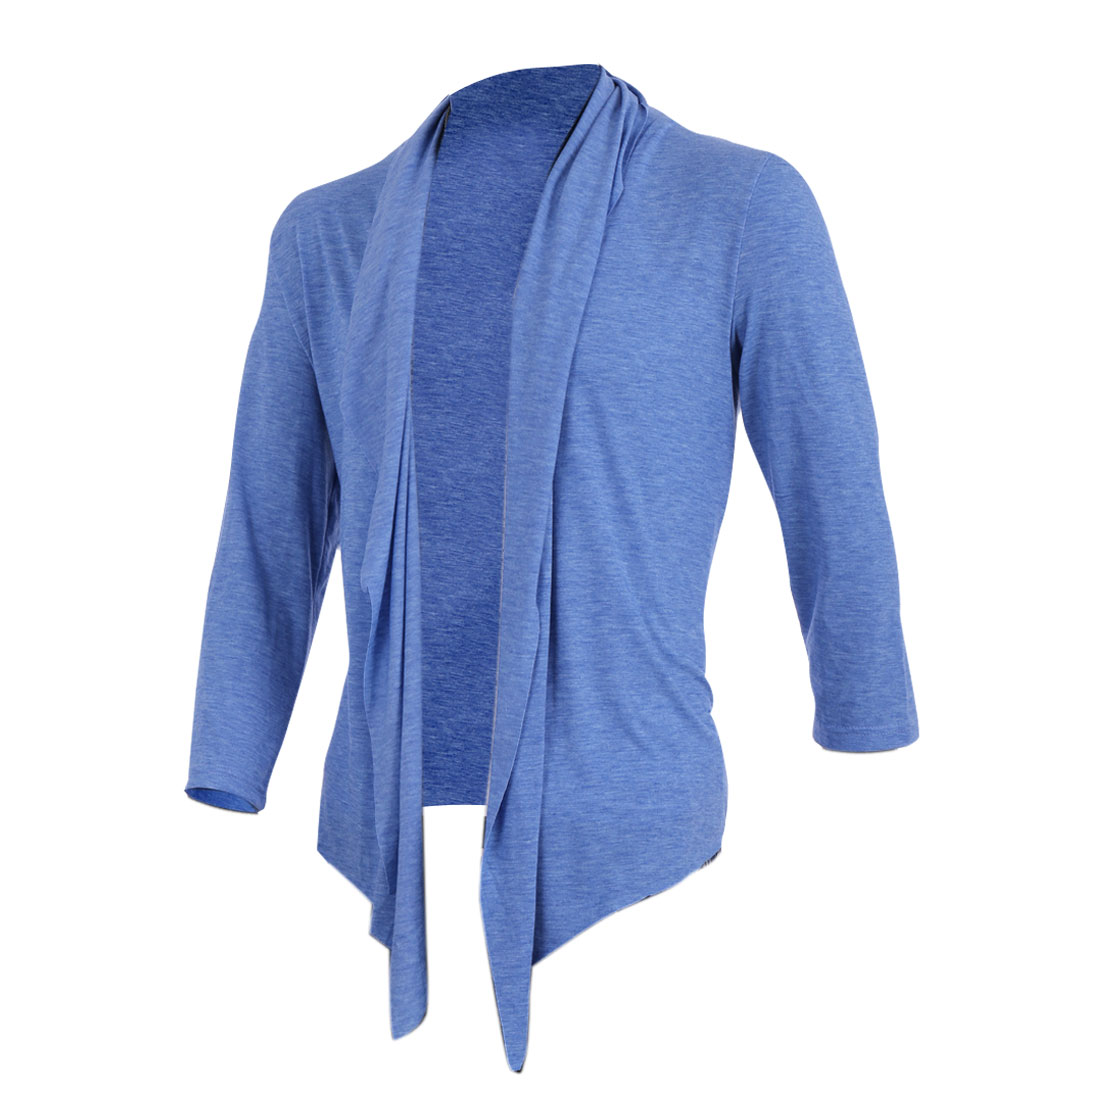 Men Stretchy V Neck 3/4 Sleeve Loose Cardigan Sweater Shirt Light Blue M